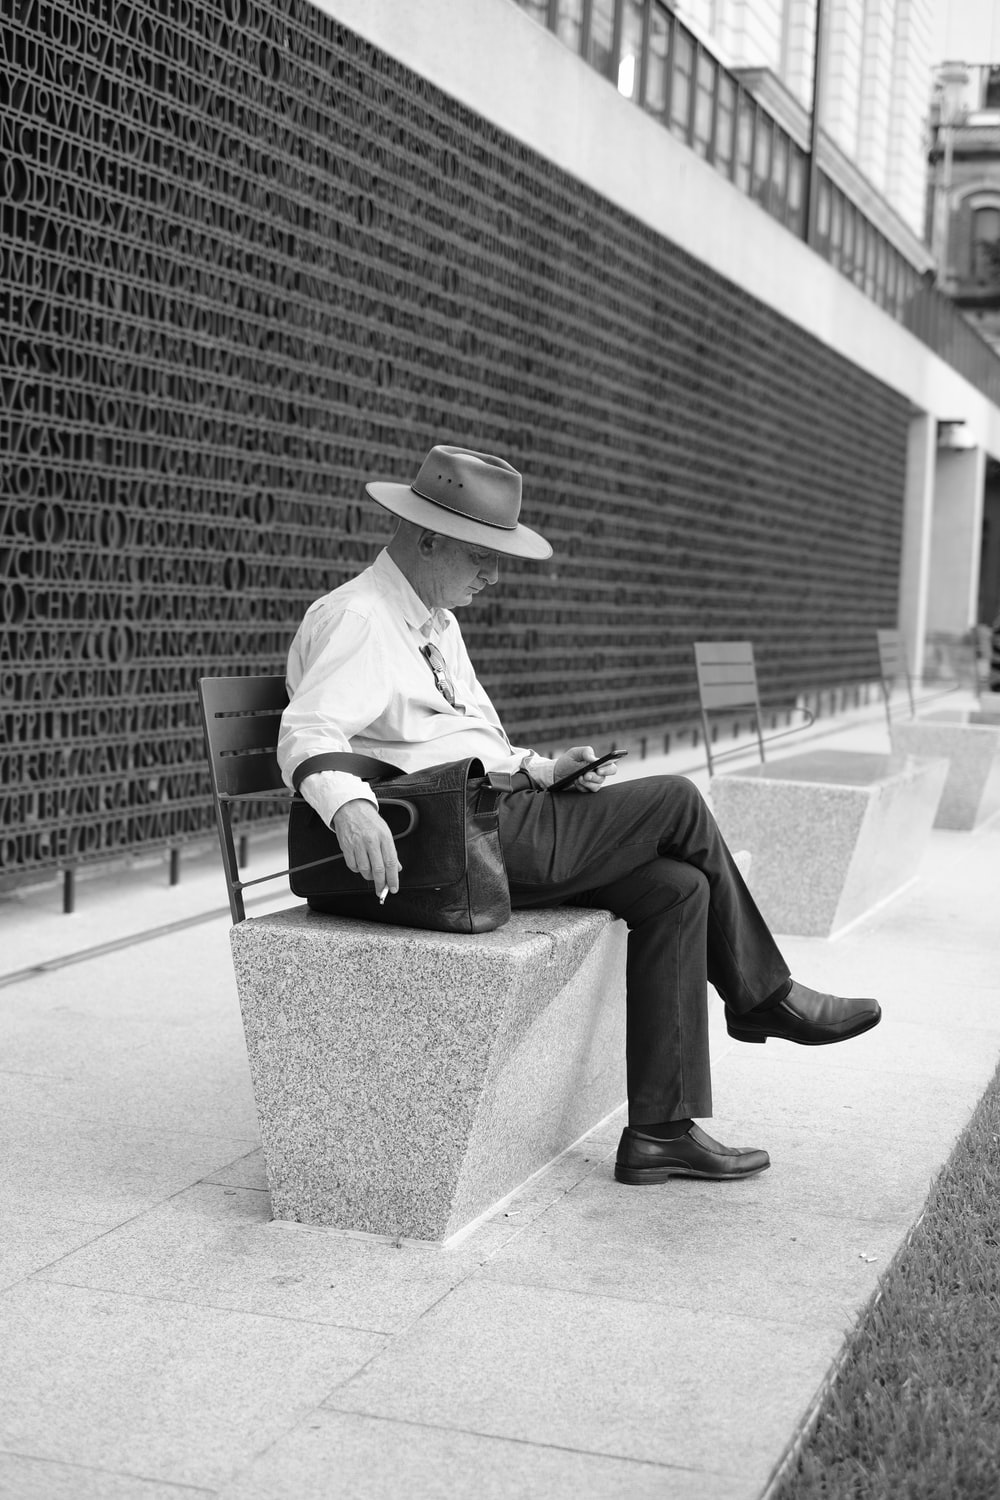 grayscale photo of man in white long sleeve shirt and black pants sitting on concrete bench